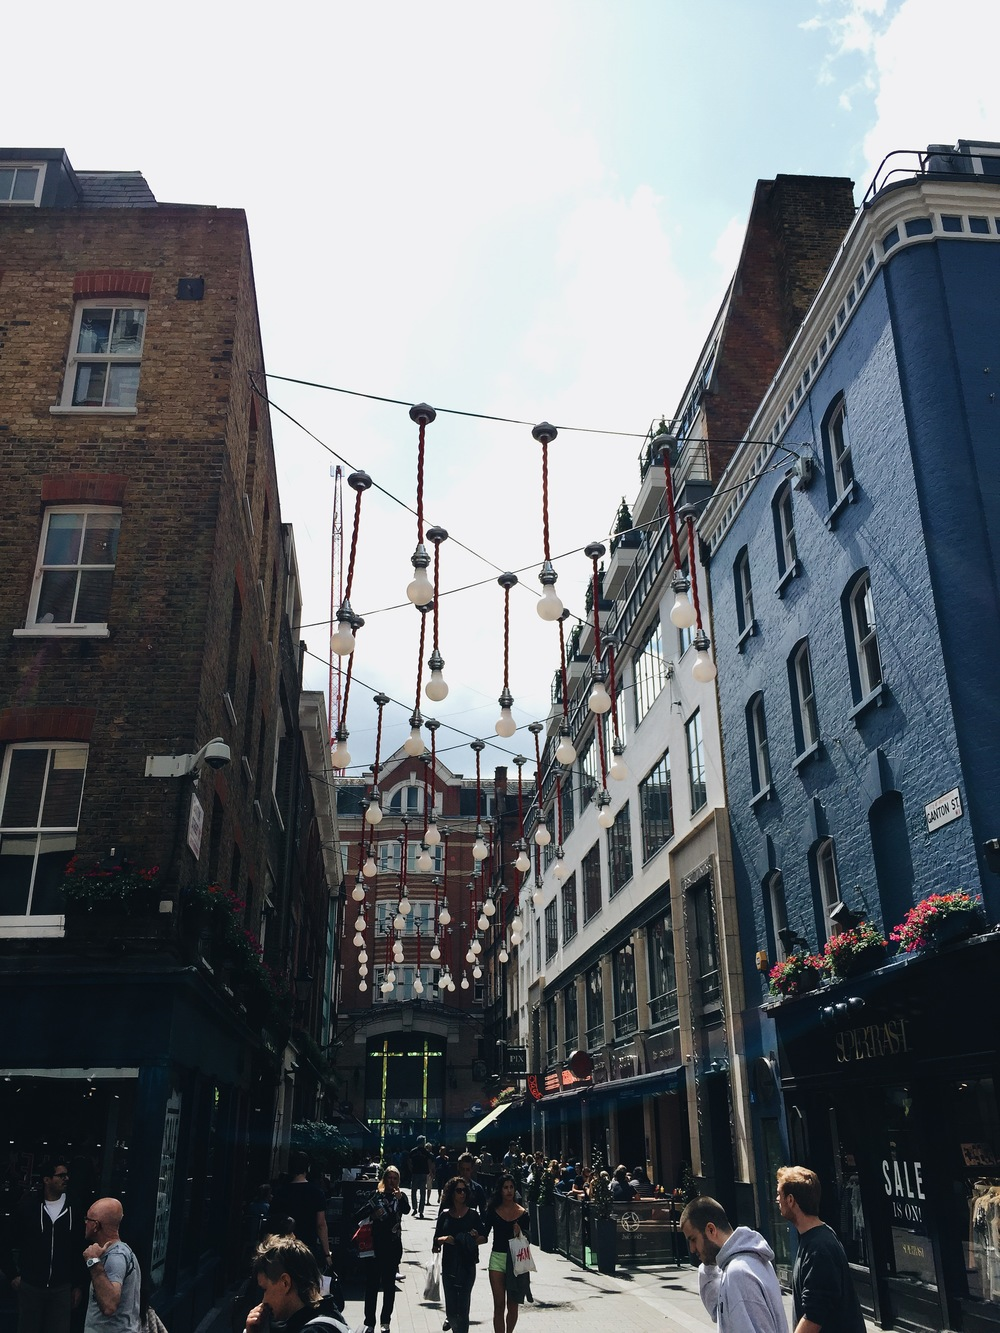 SOA_london-carnaby-street.jpg